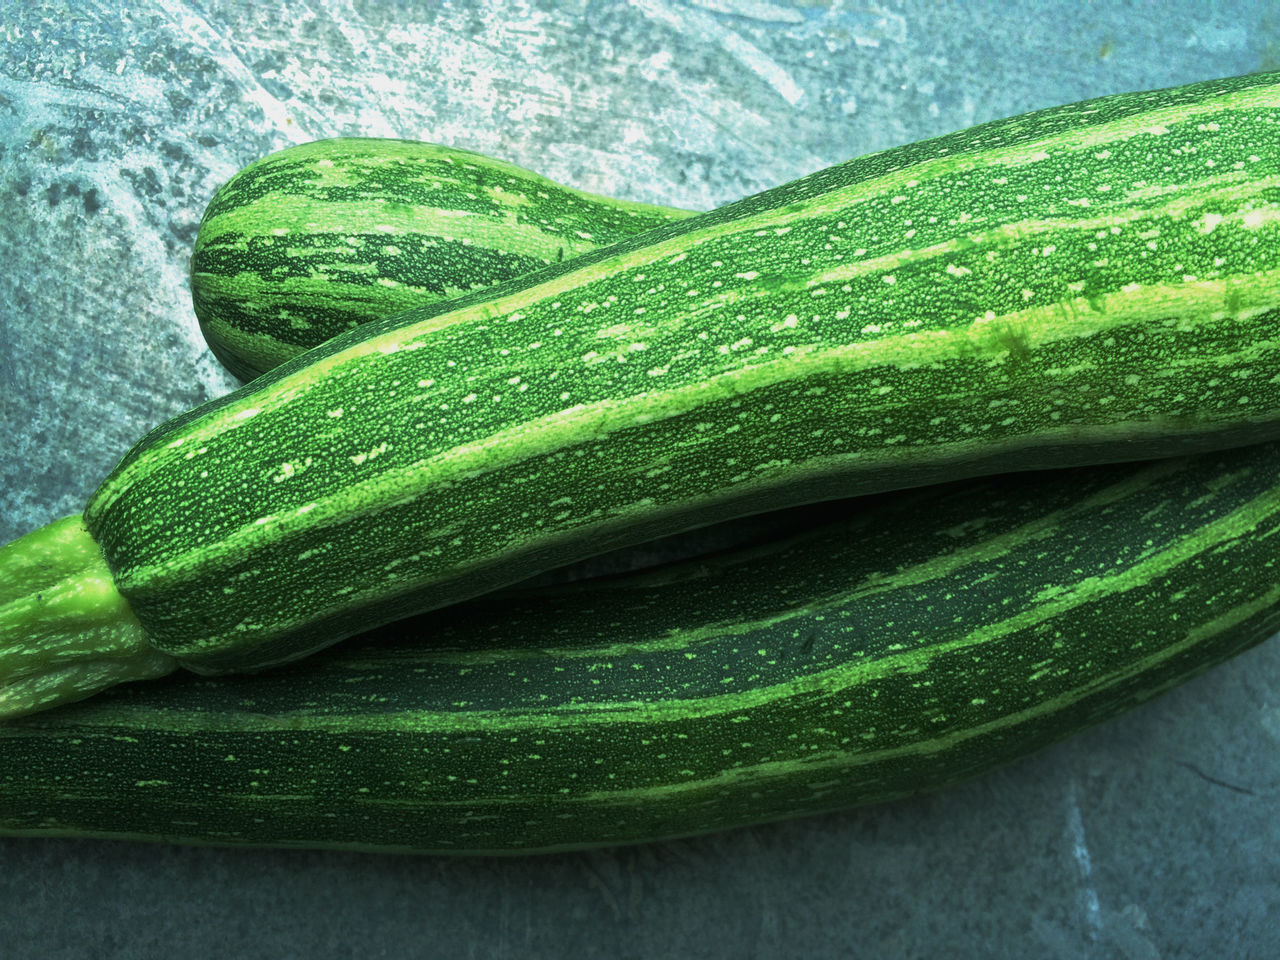 Close-Up Of Zucchinis On Table